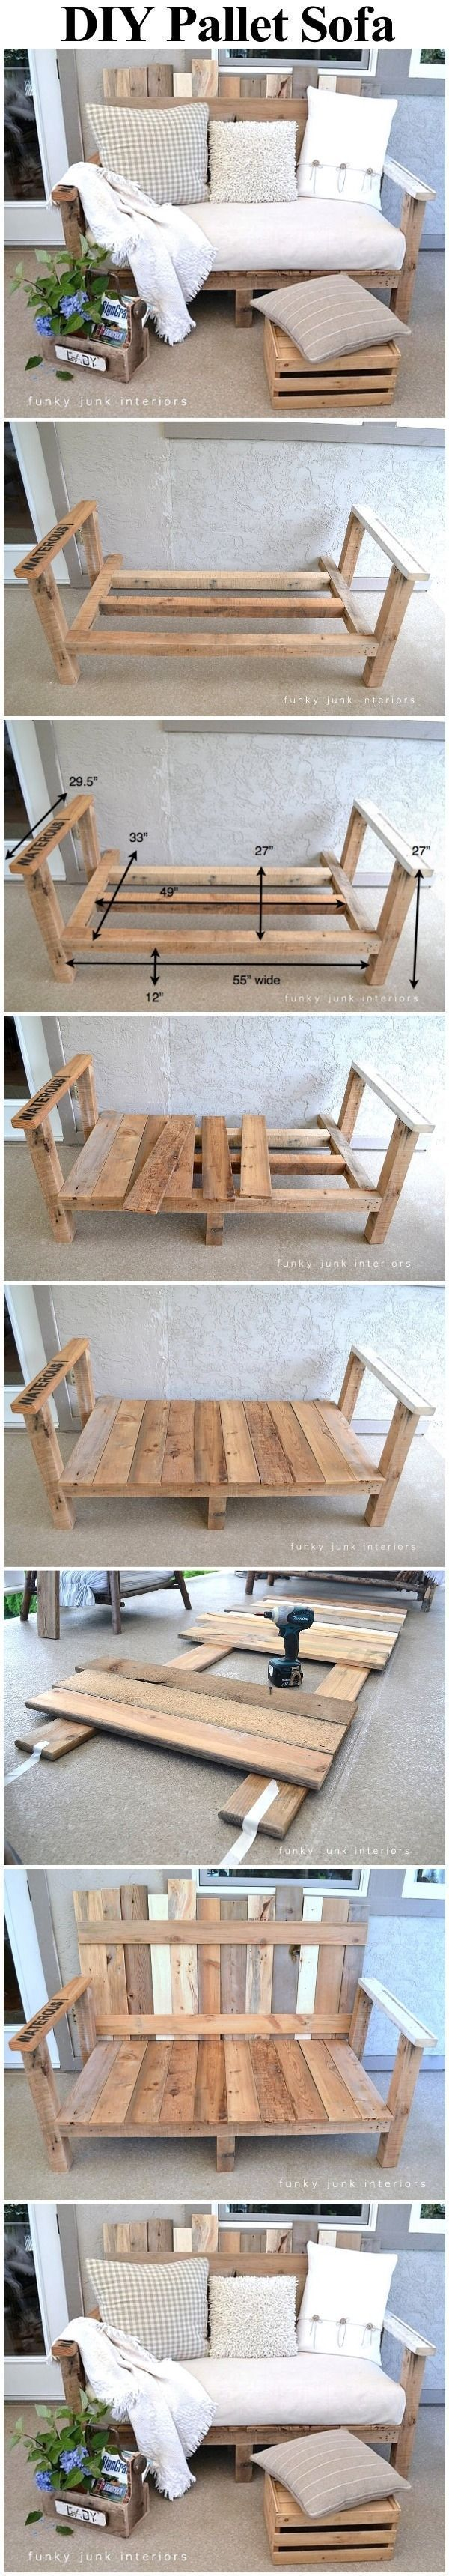 nice Pallet Wood Outdoor Sofa by : ?utm_content=bufferab98e&utm_medium=social&utm_source=pinterest.com&utm_campaign=buffer